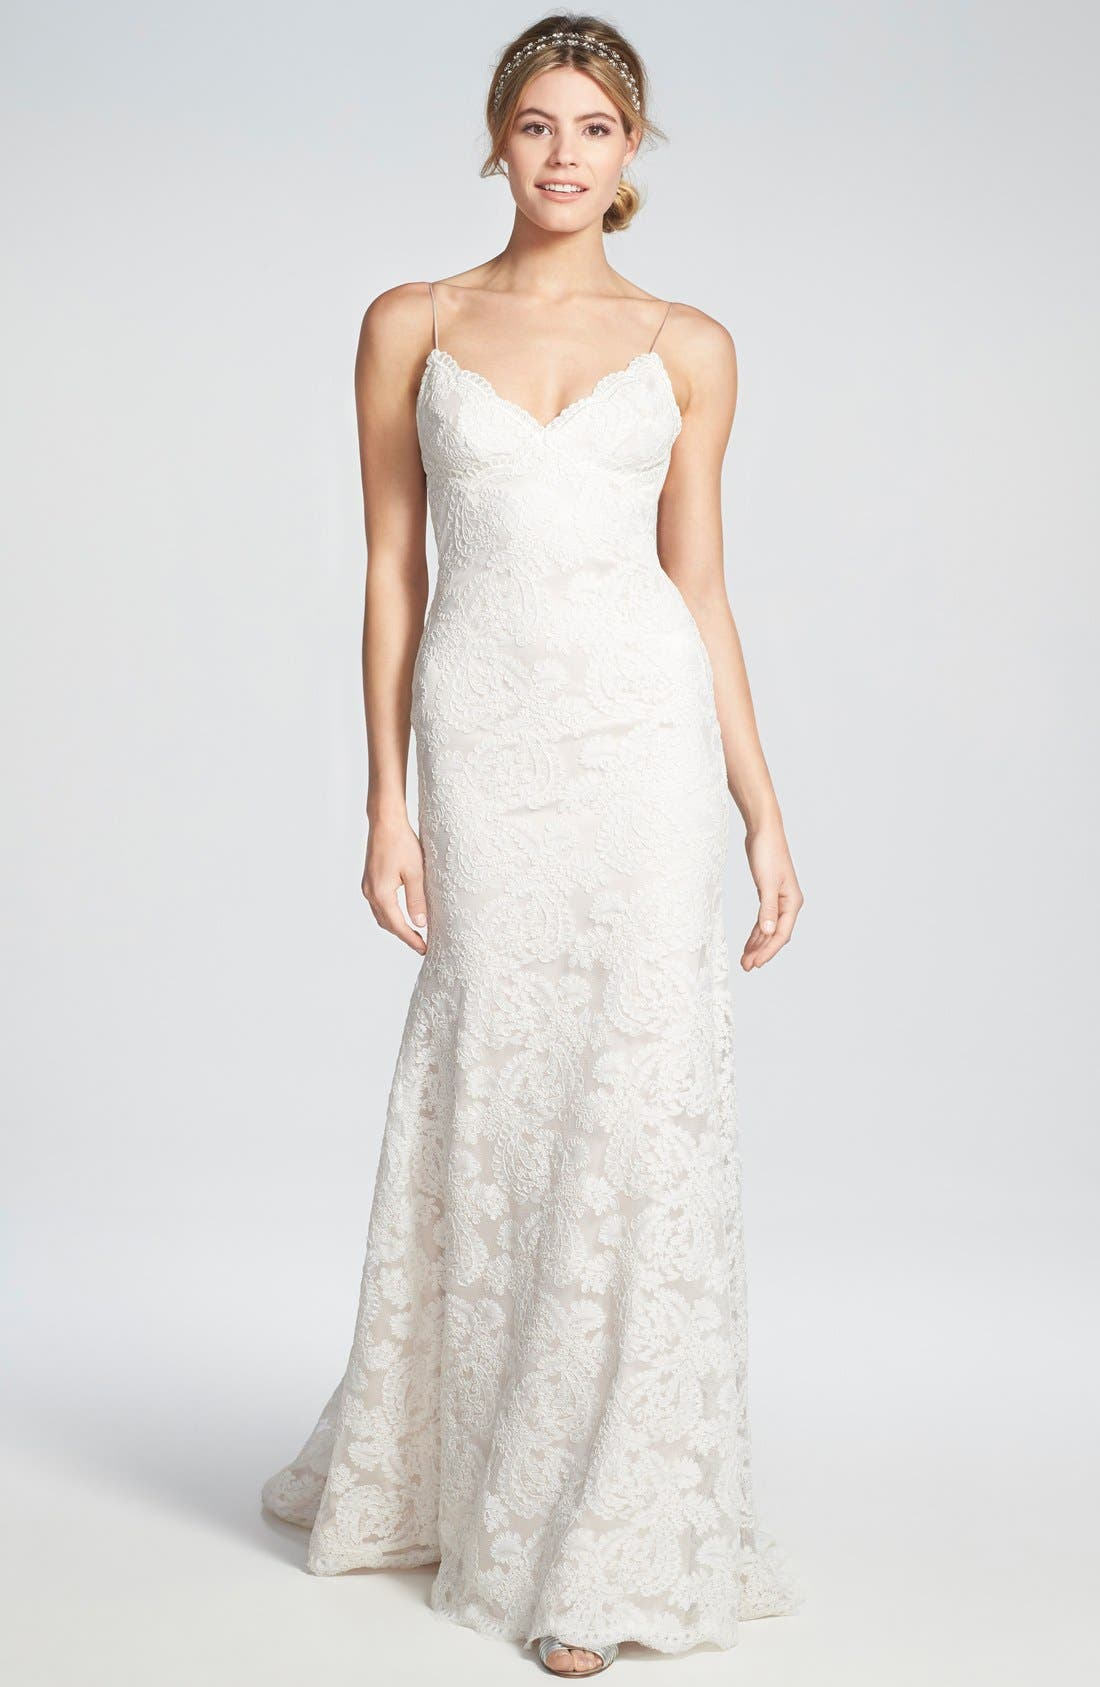 Katie May 'Lanai' Convertible Cap Sleeve Lace Low Back Gown